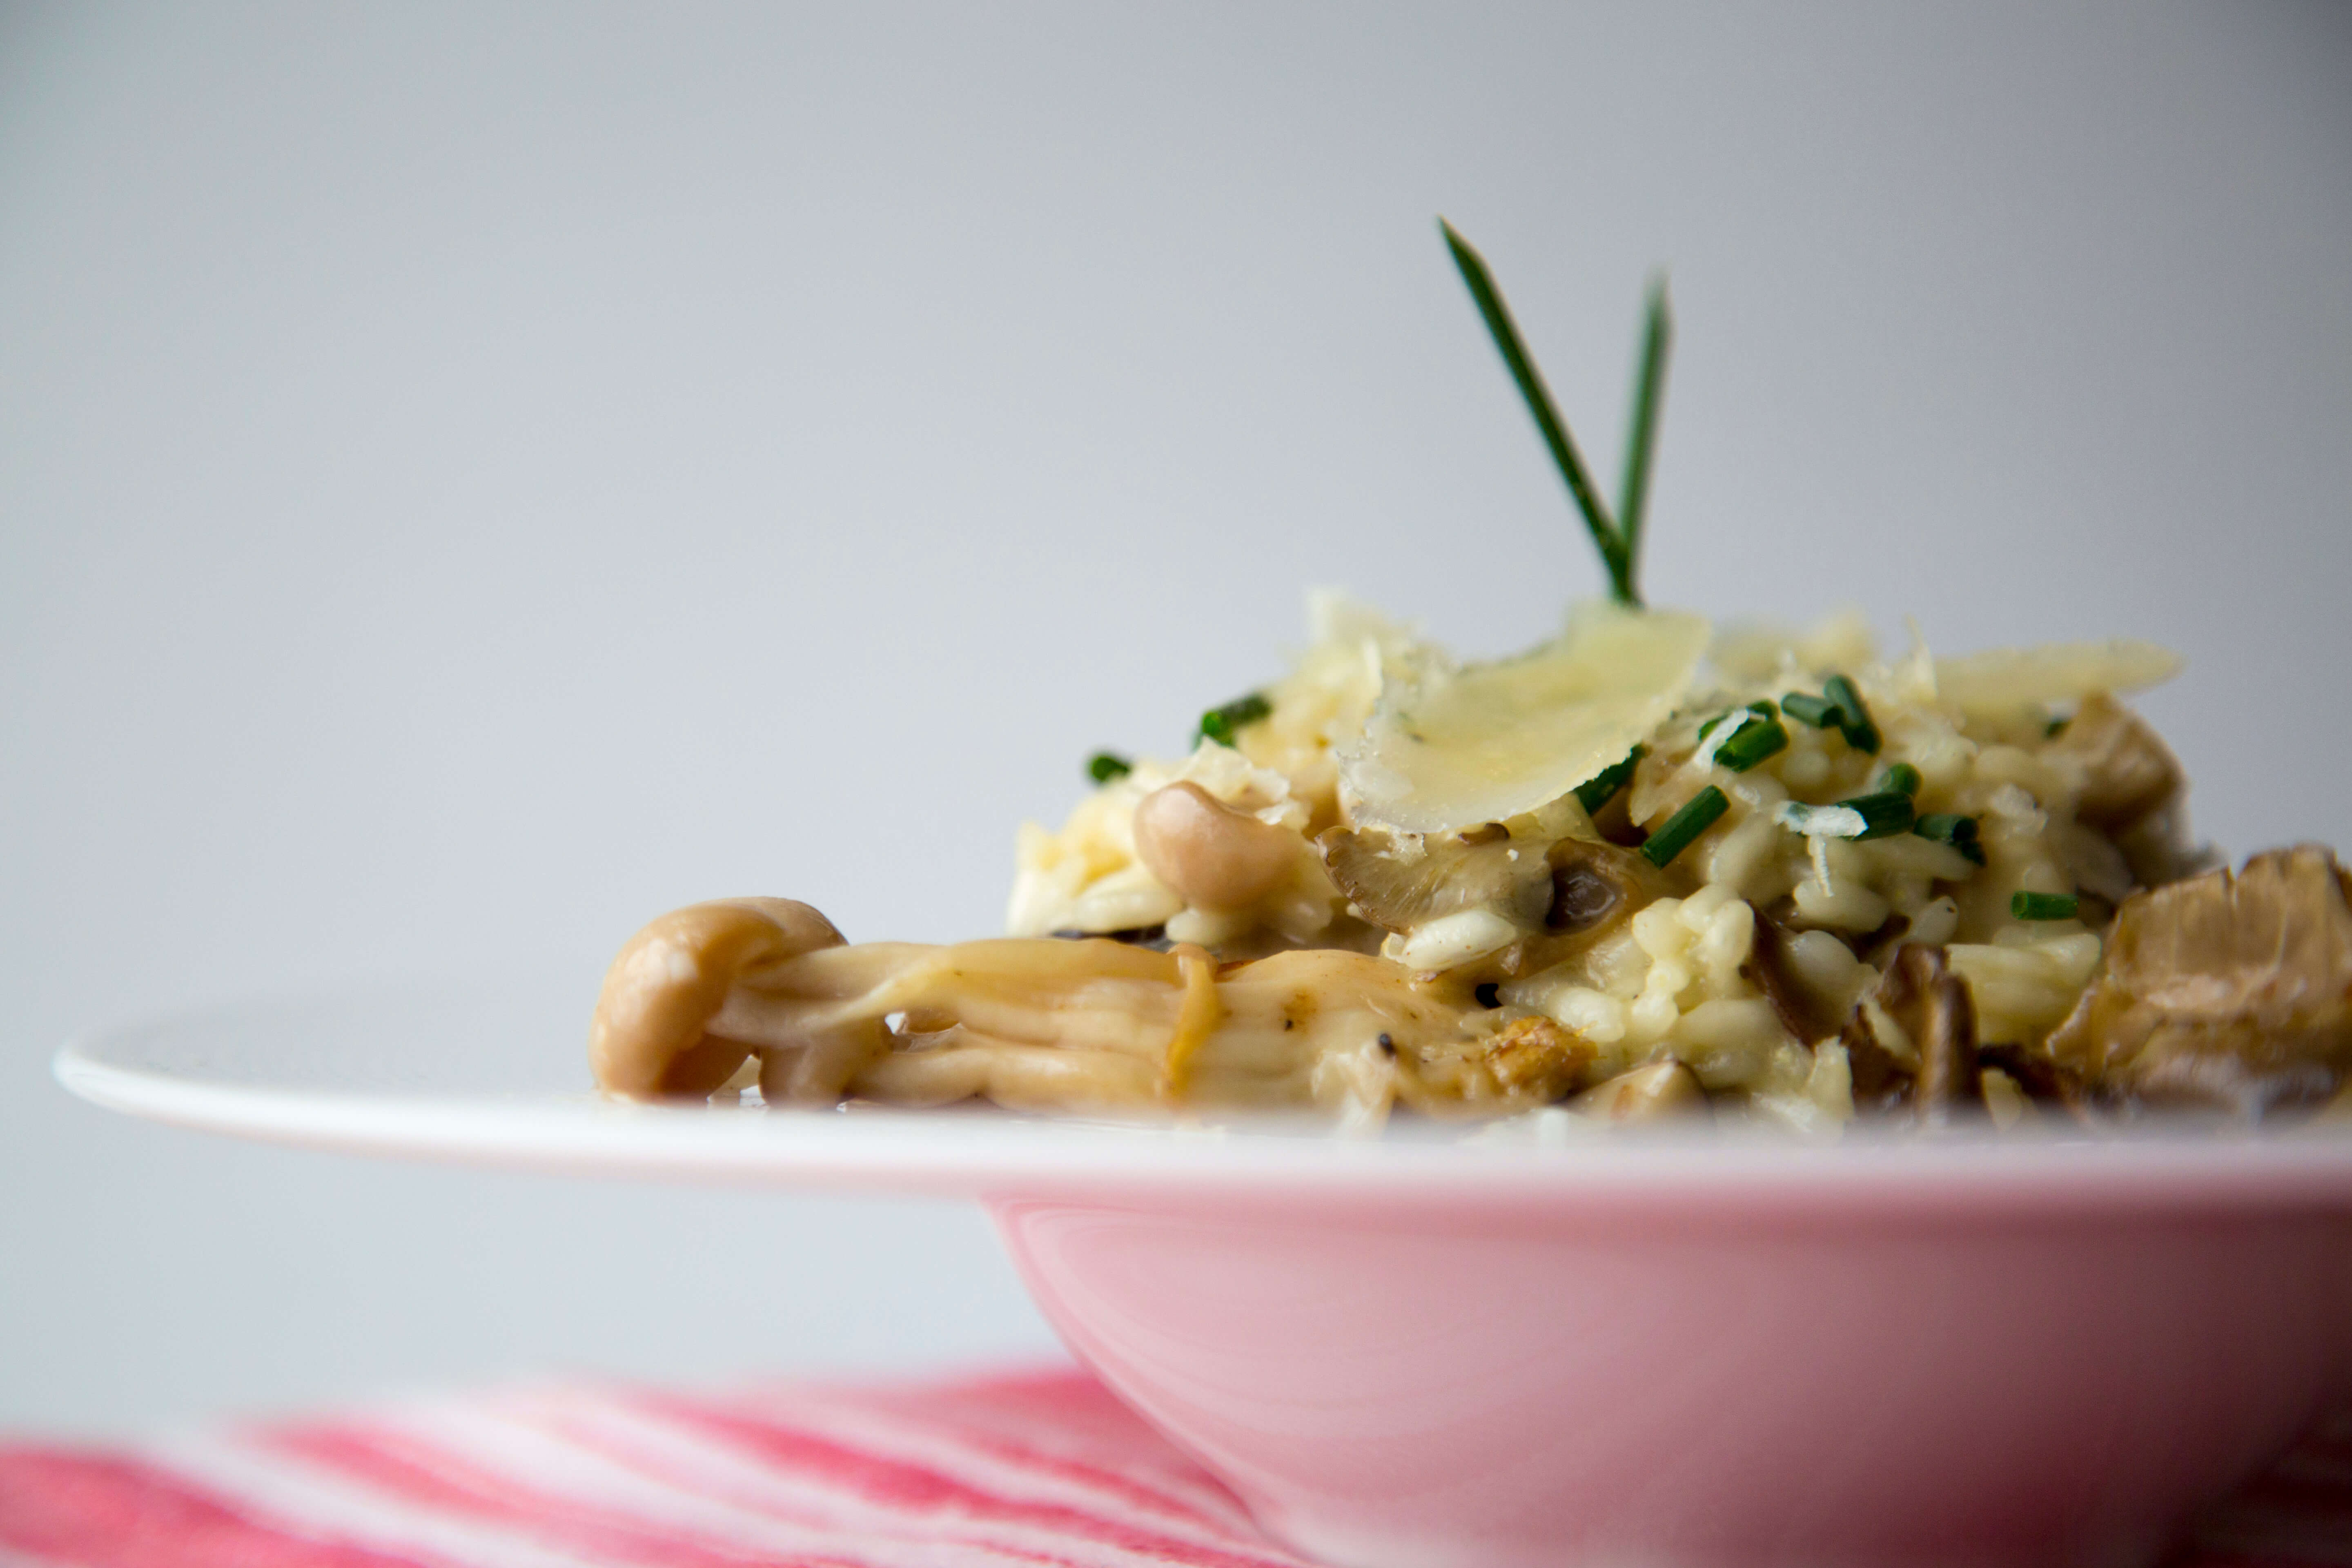 You can garnish the dish with Parmesan, chives and more mushrooms.